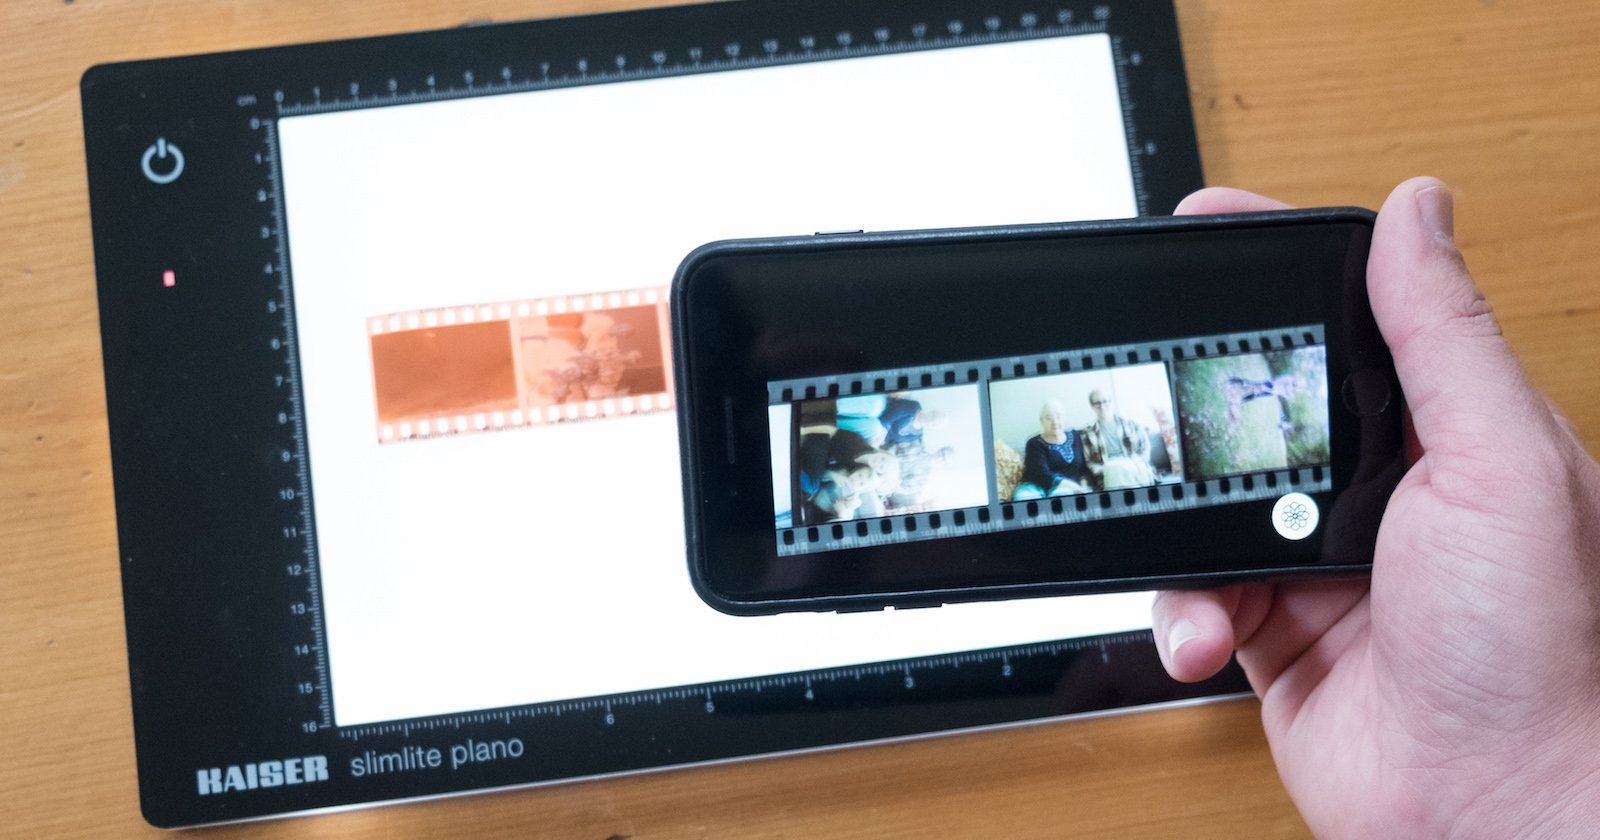 Ingenious 'FilmLab' App is the Easiest Way to Turn Negatives Into Digital Files